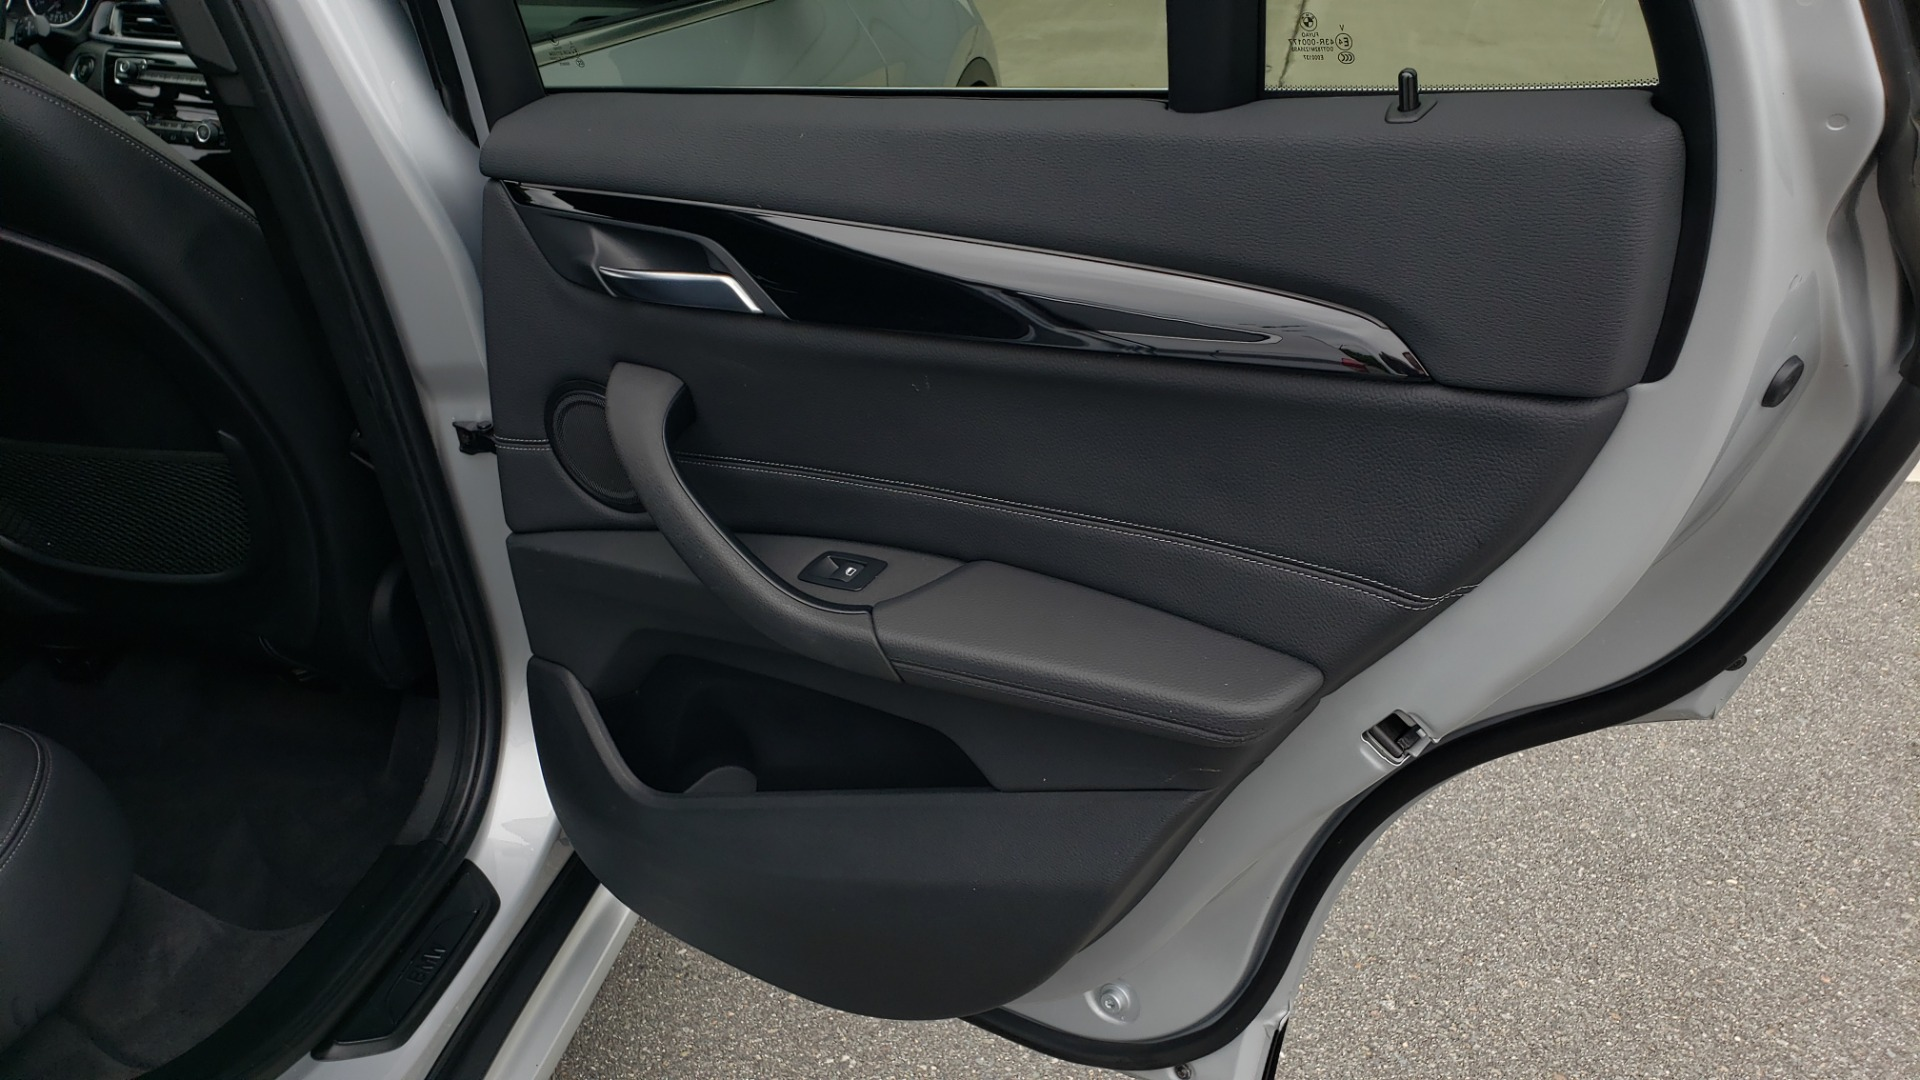 Used 2018 BMW X1 XDRIVE38I / NAV / CONV PKG / PANO-ROOF / HTD STS / REARVIEW for sale $28,995 at Formula Imports in Charlotte NC 28227 64